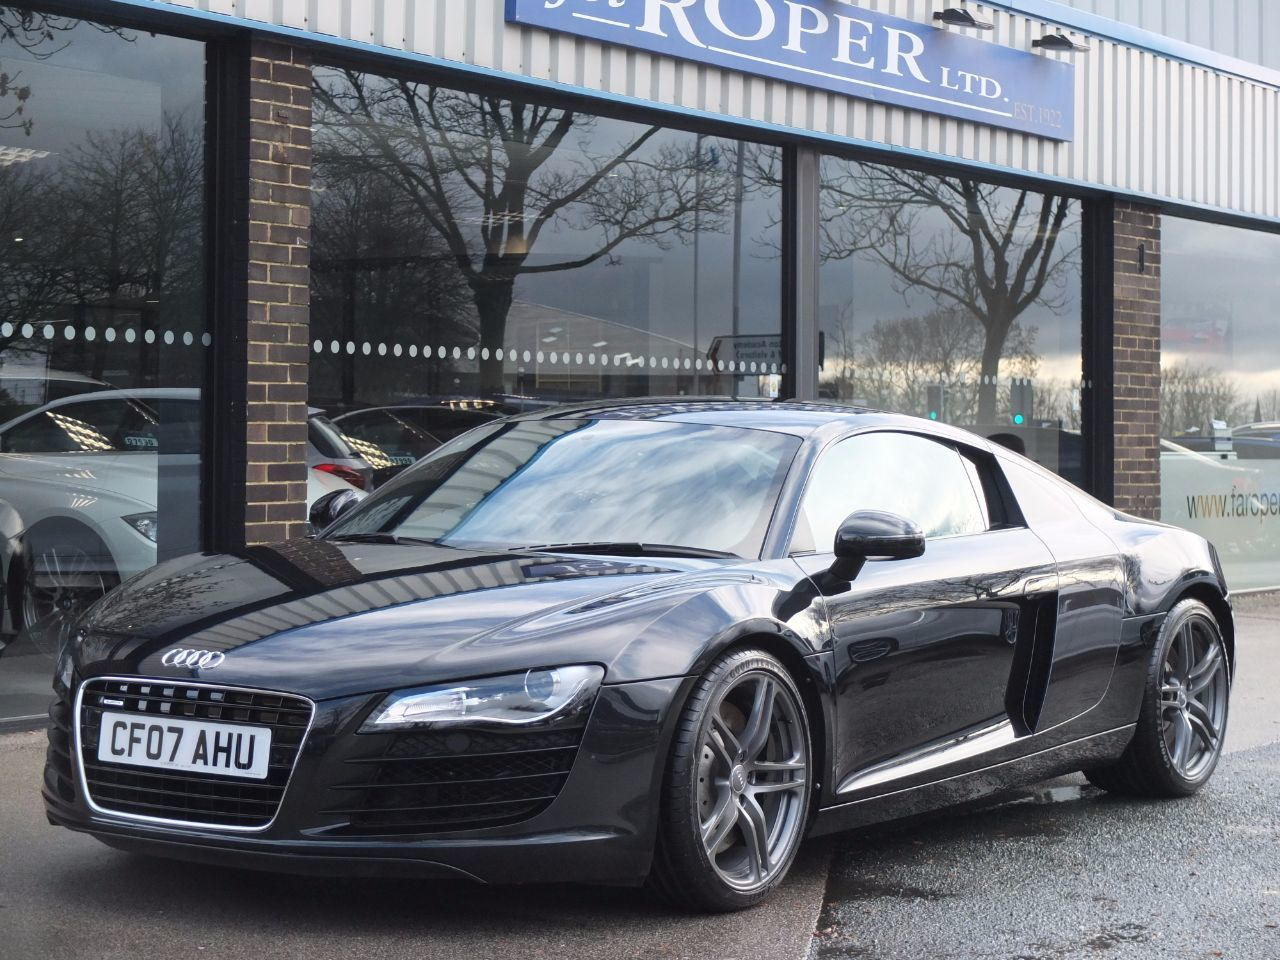 Audi R8 4.2 FSI quattro Coupe Petrol Phantom Black MetallicAudi R8 4.2 FSI quattro Coupe Petrol Phantom Black Metallic at fa Roper Ltd Bradford